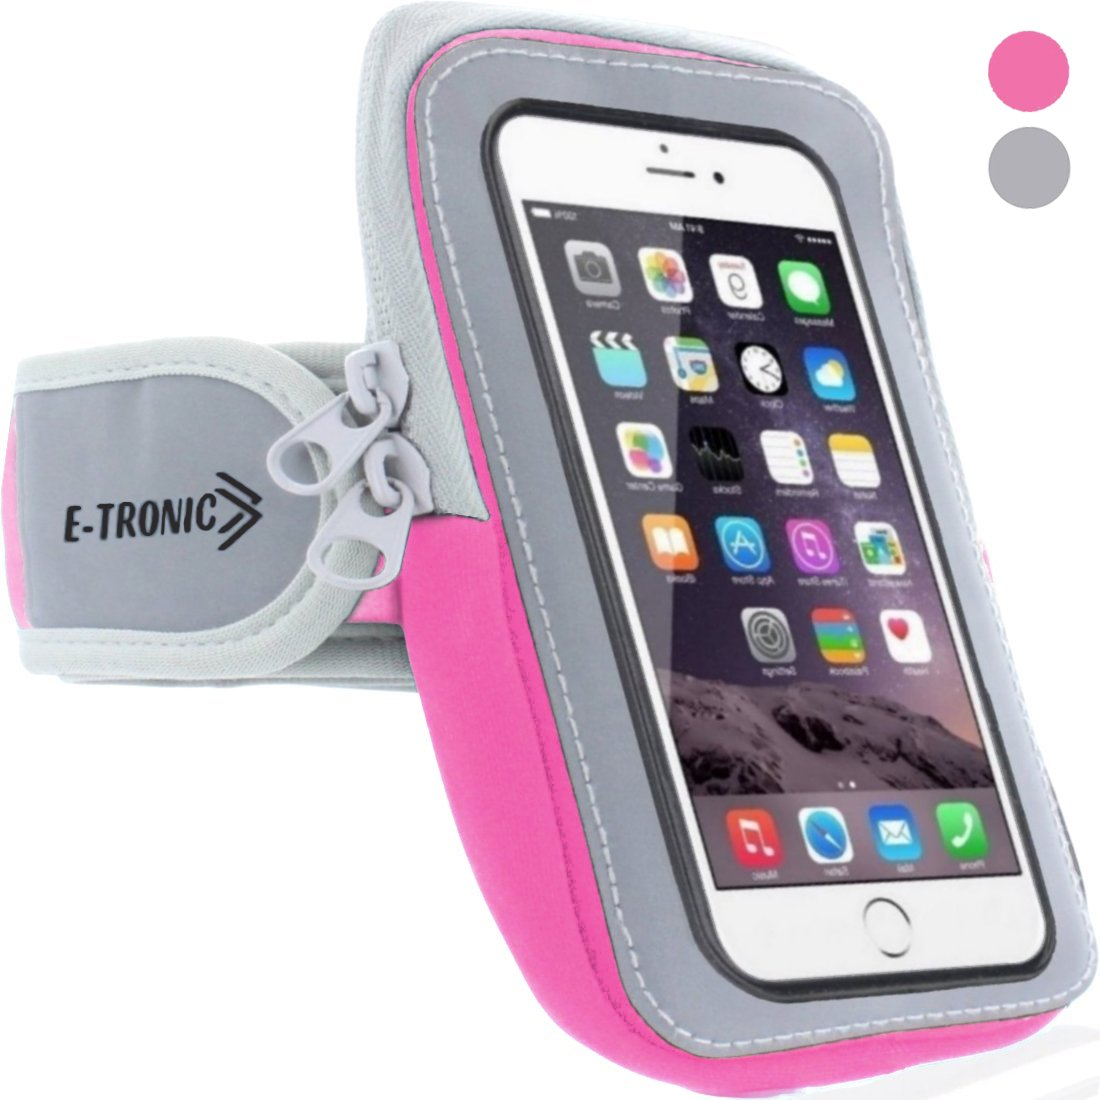 Sports Armband: Cell Phone Holder Case Arm Band Strap with Zipper Pouch Mobile Exercise Running Workout for Apple iPhone 6 6S 7 Plus Touch Android Samsung Galaxy S5 S6 S7 Note 5 Edge Pixel (Pink)